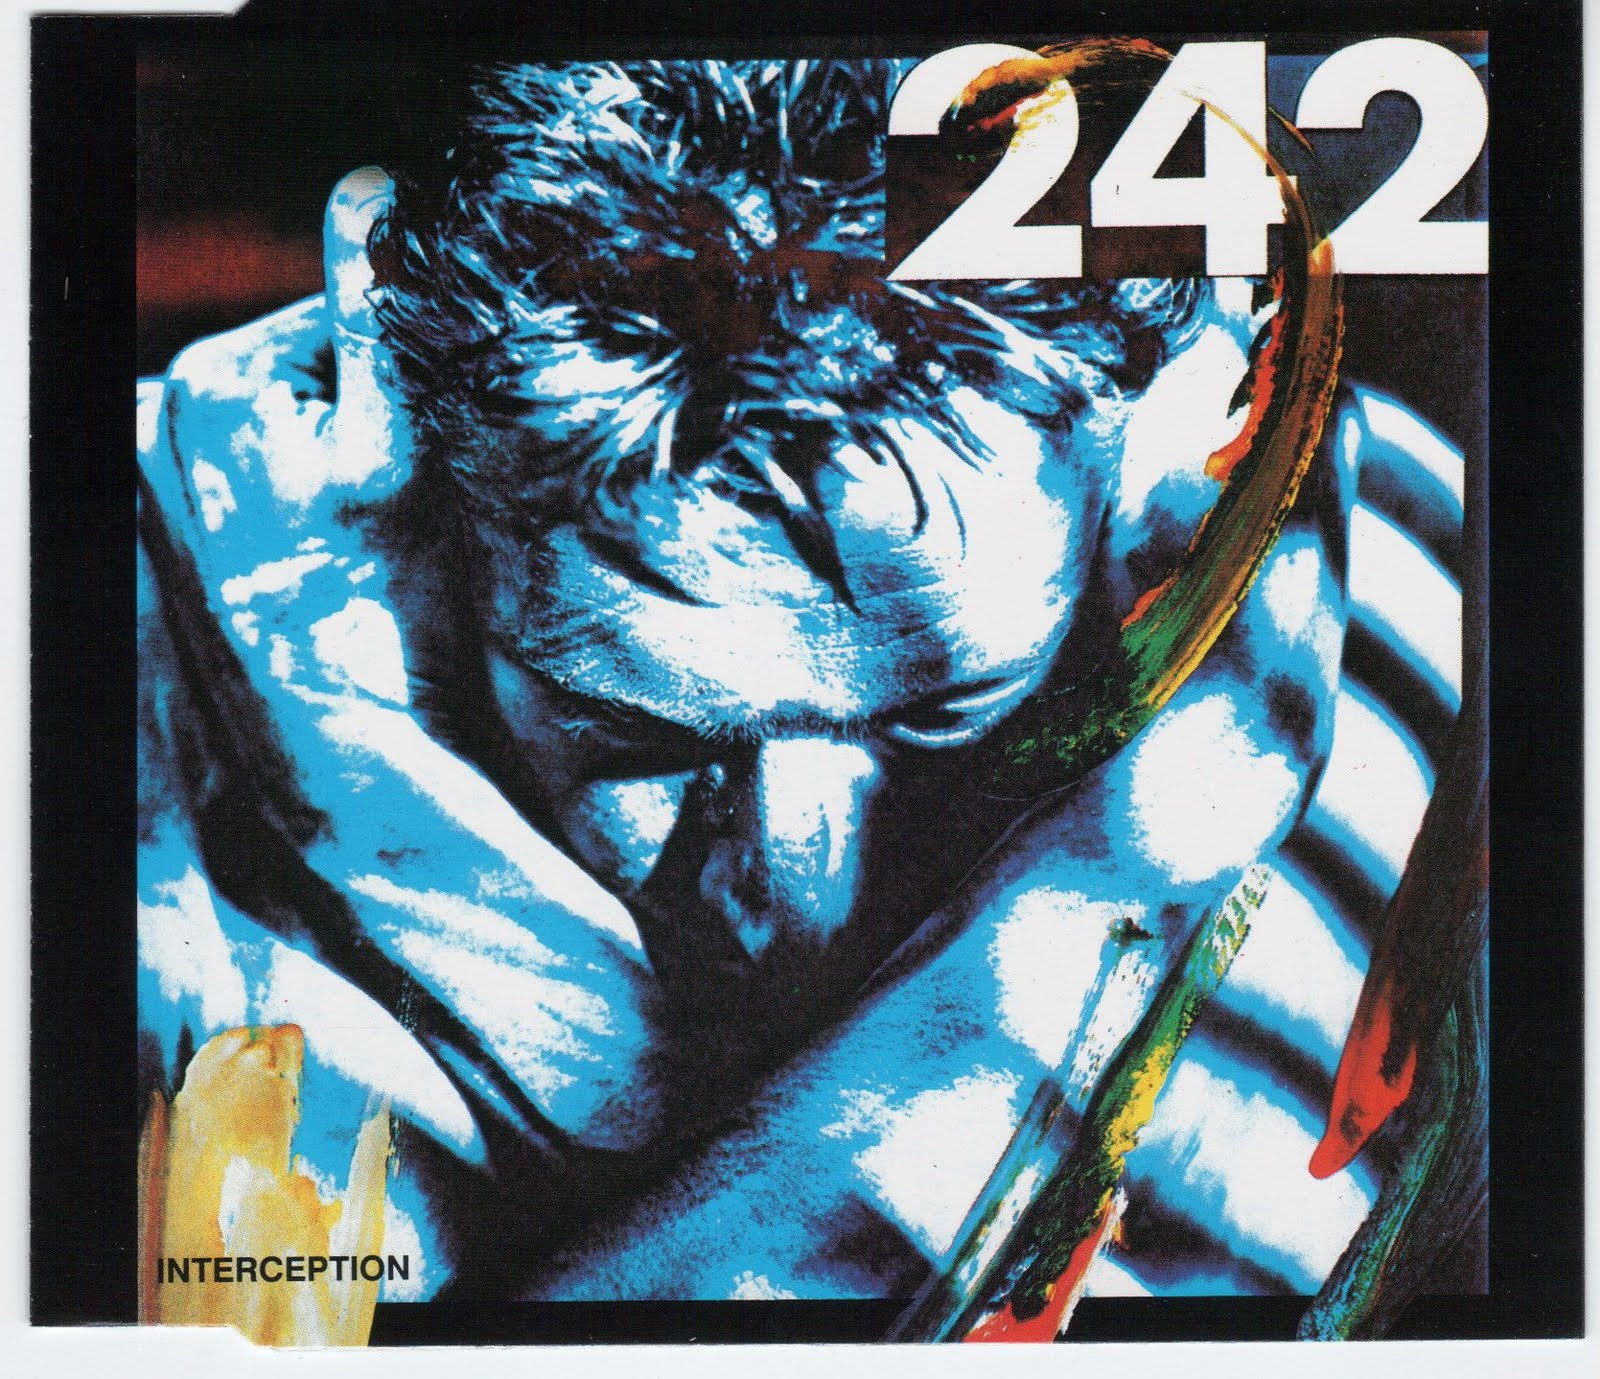 Front 242 Collector Record Of The Week Interception Cd